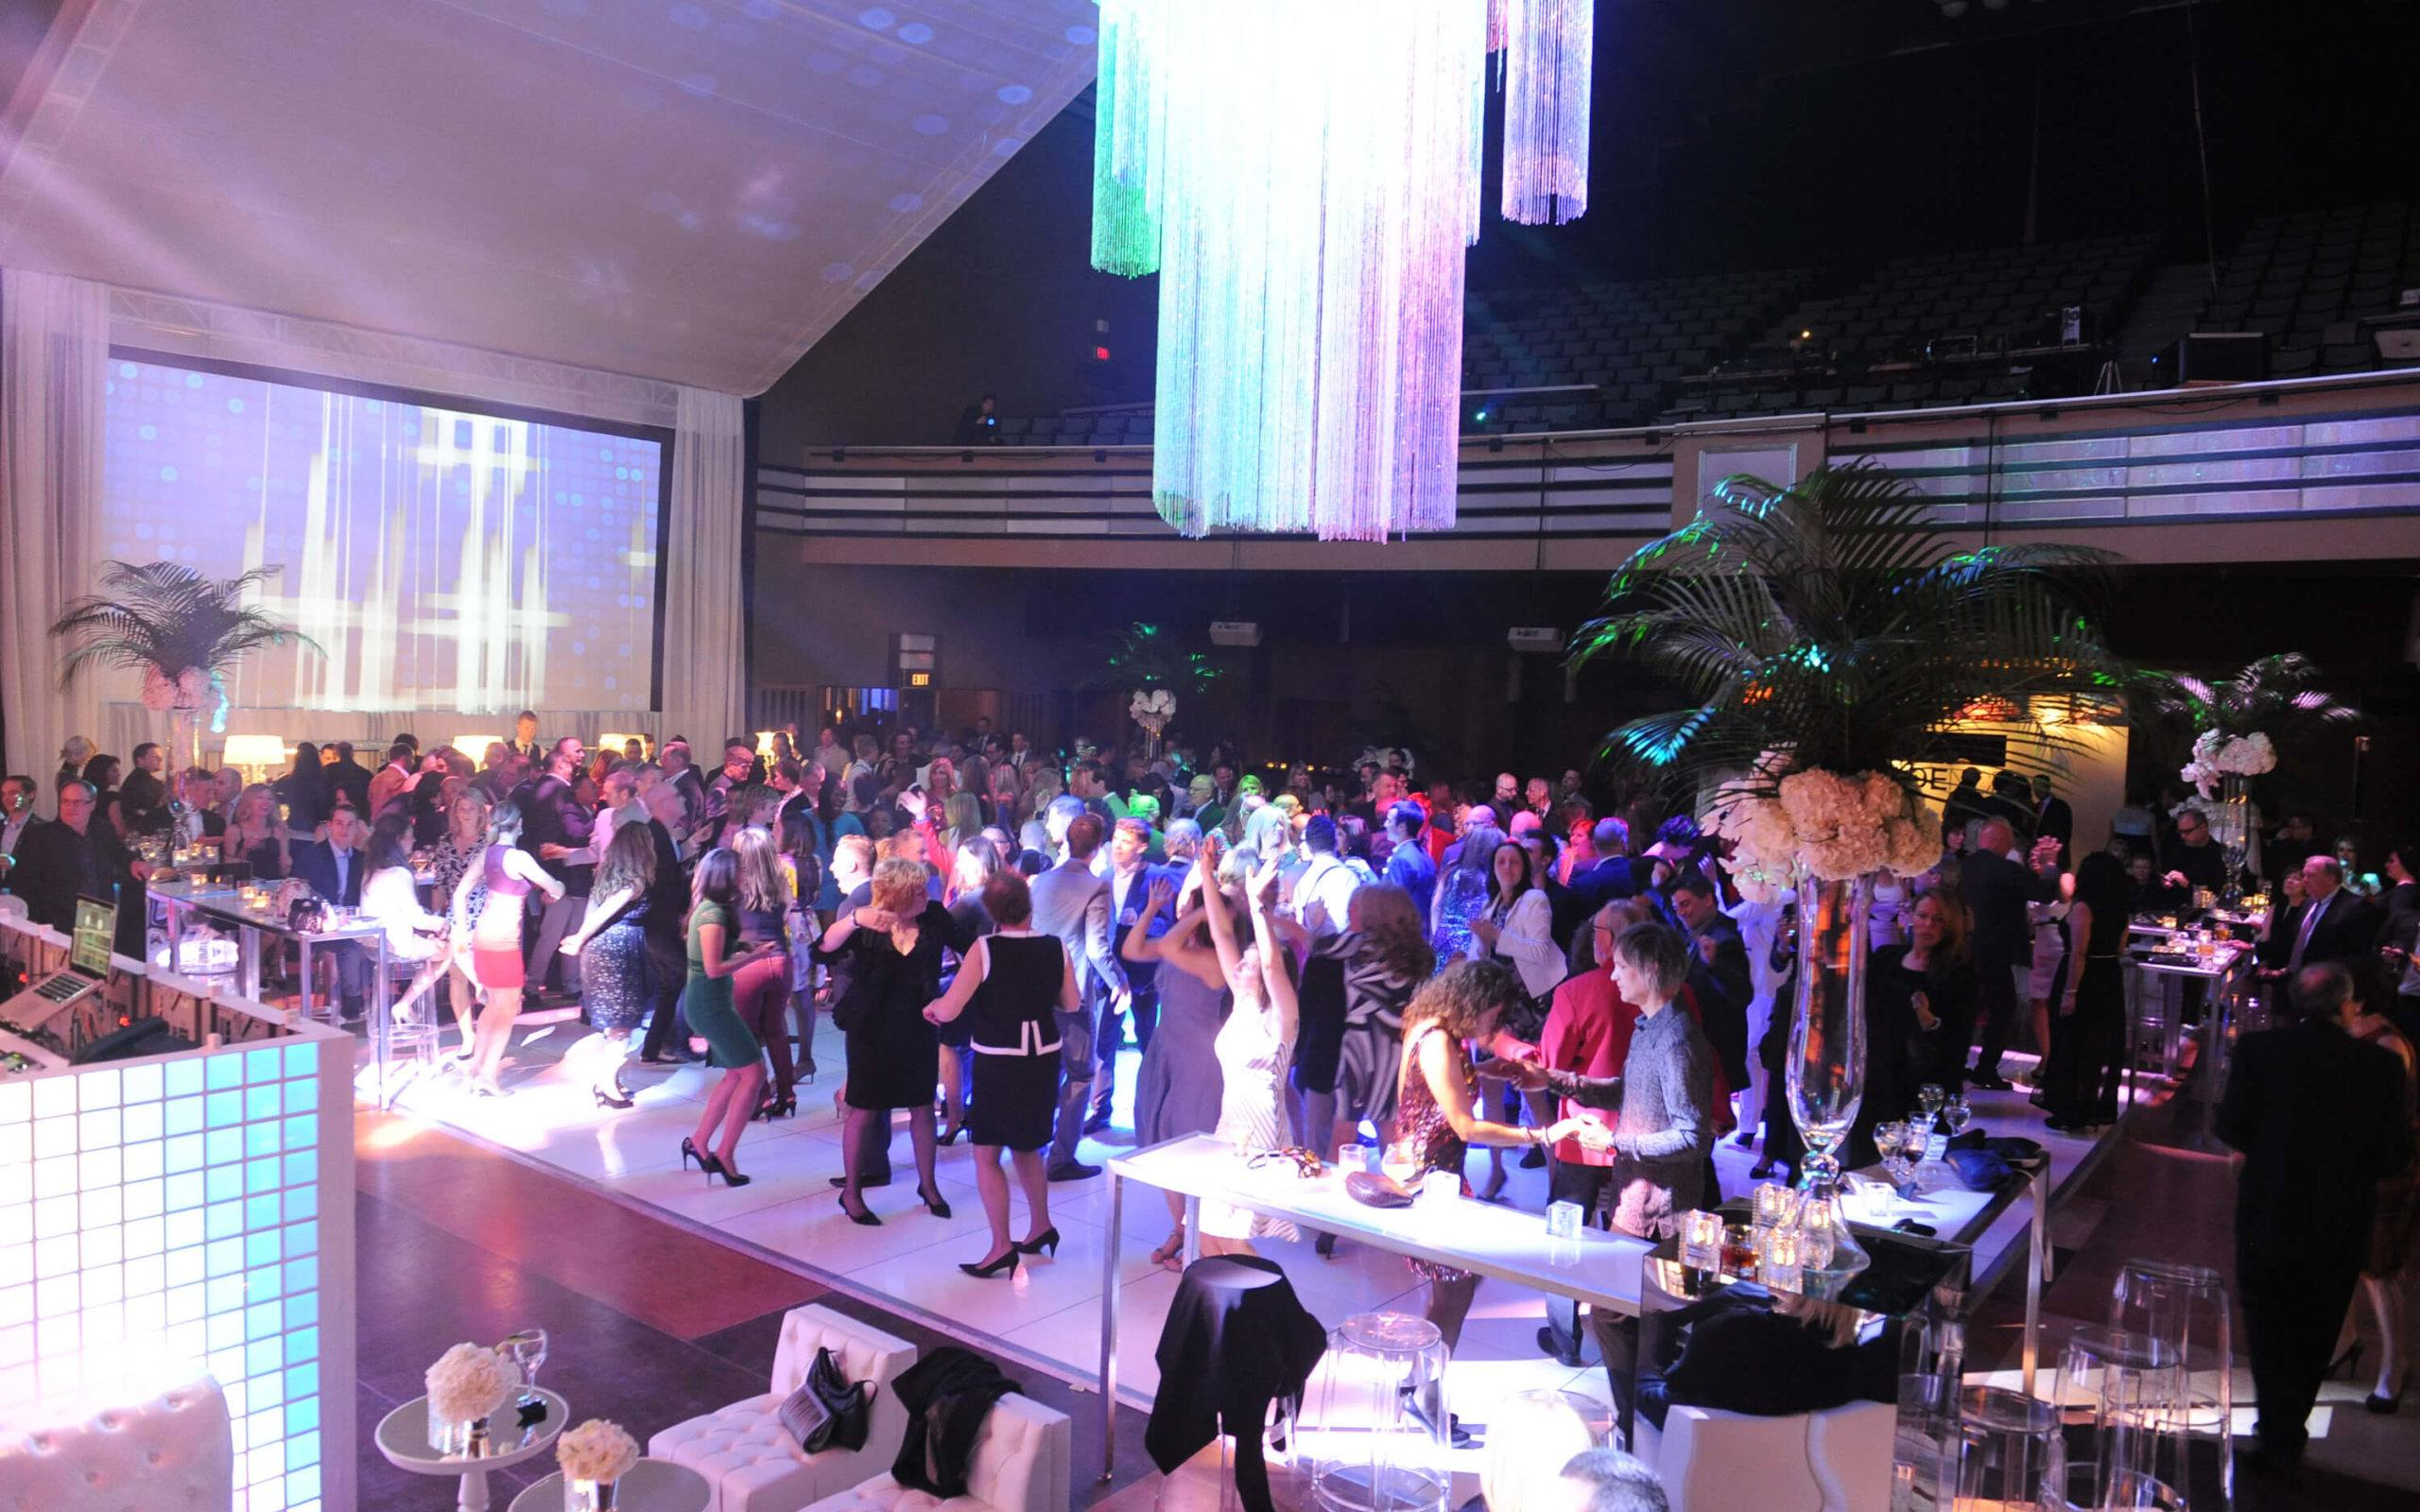 The Carlu anniversary party with a crowd of people dancing under the chandelier in the Concert Hall